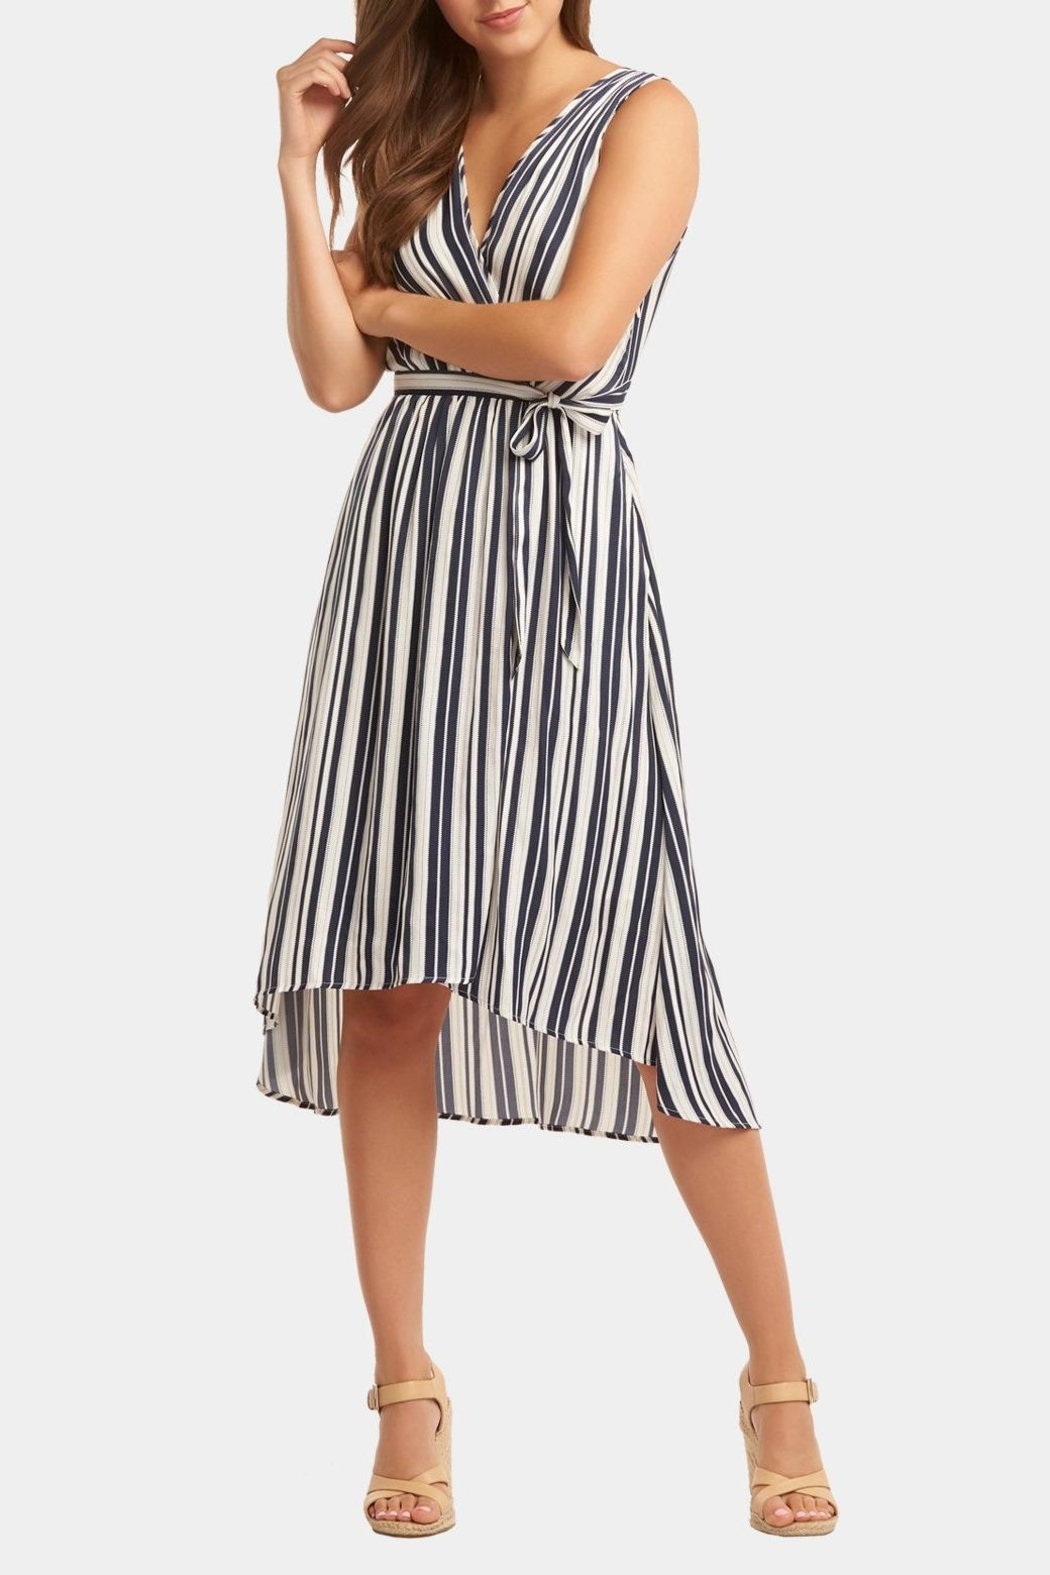 Tart Collections Stripe Midi Dress - Main Image